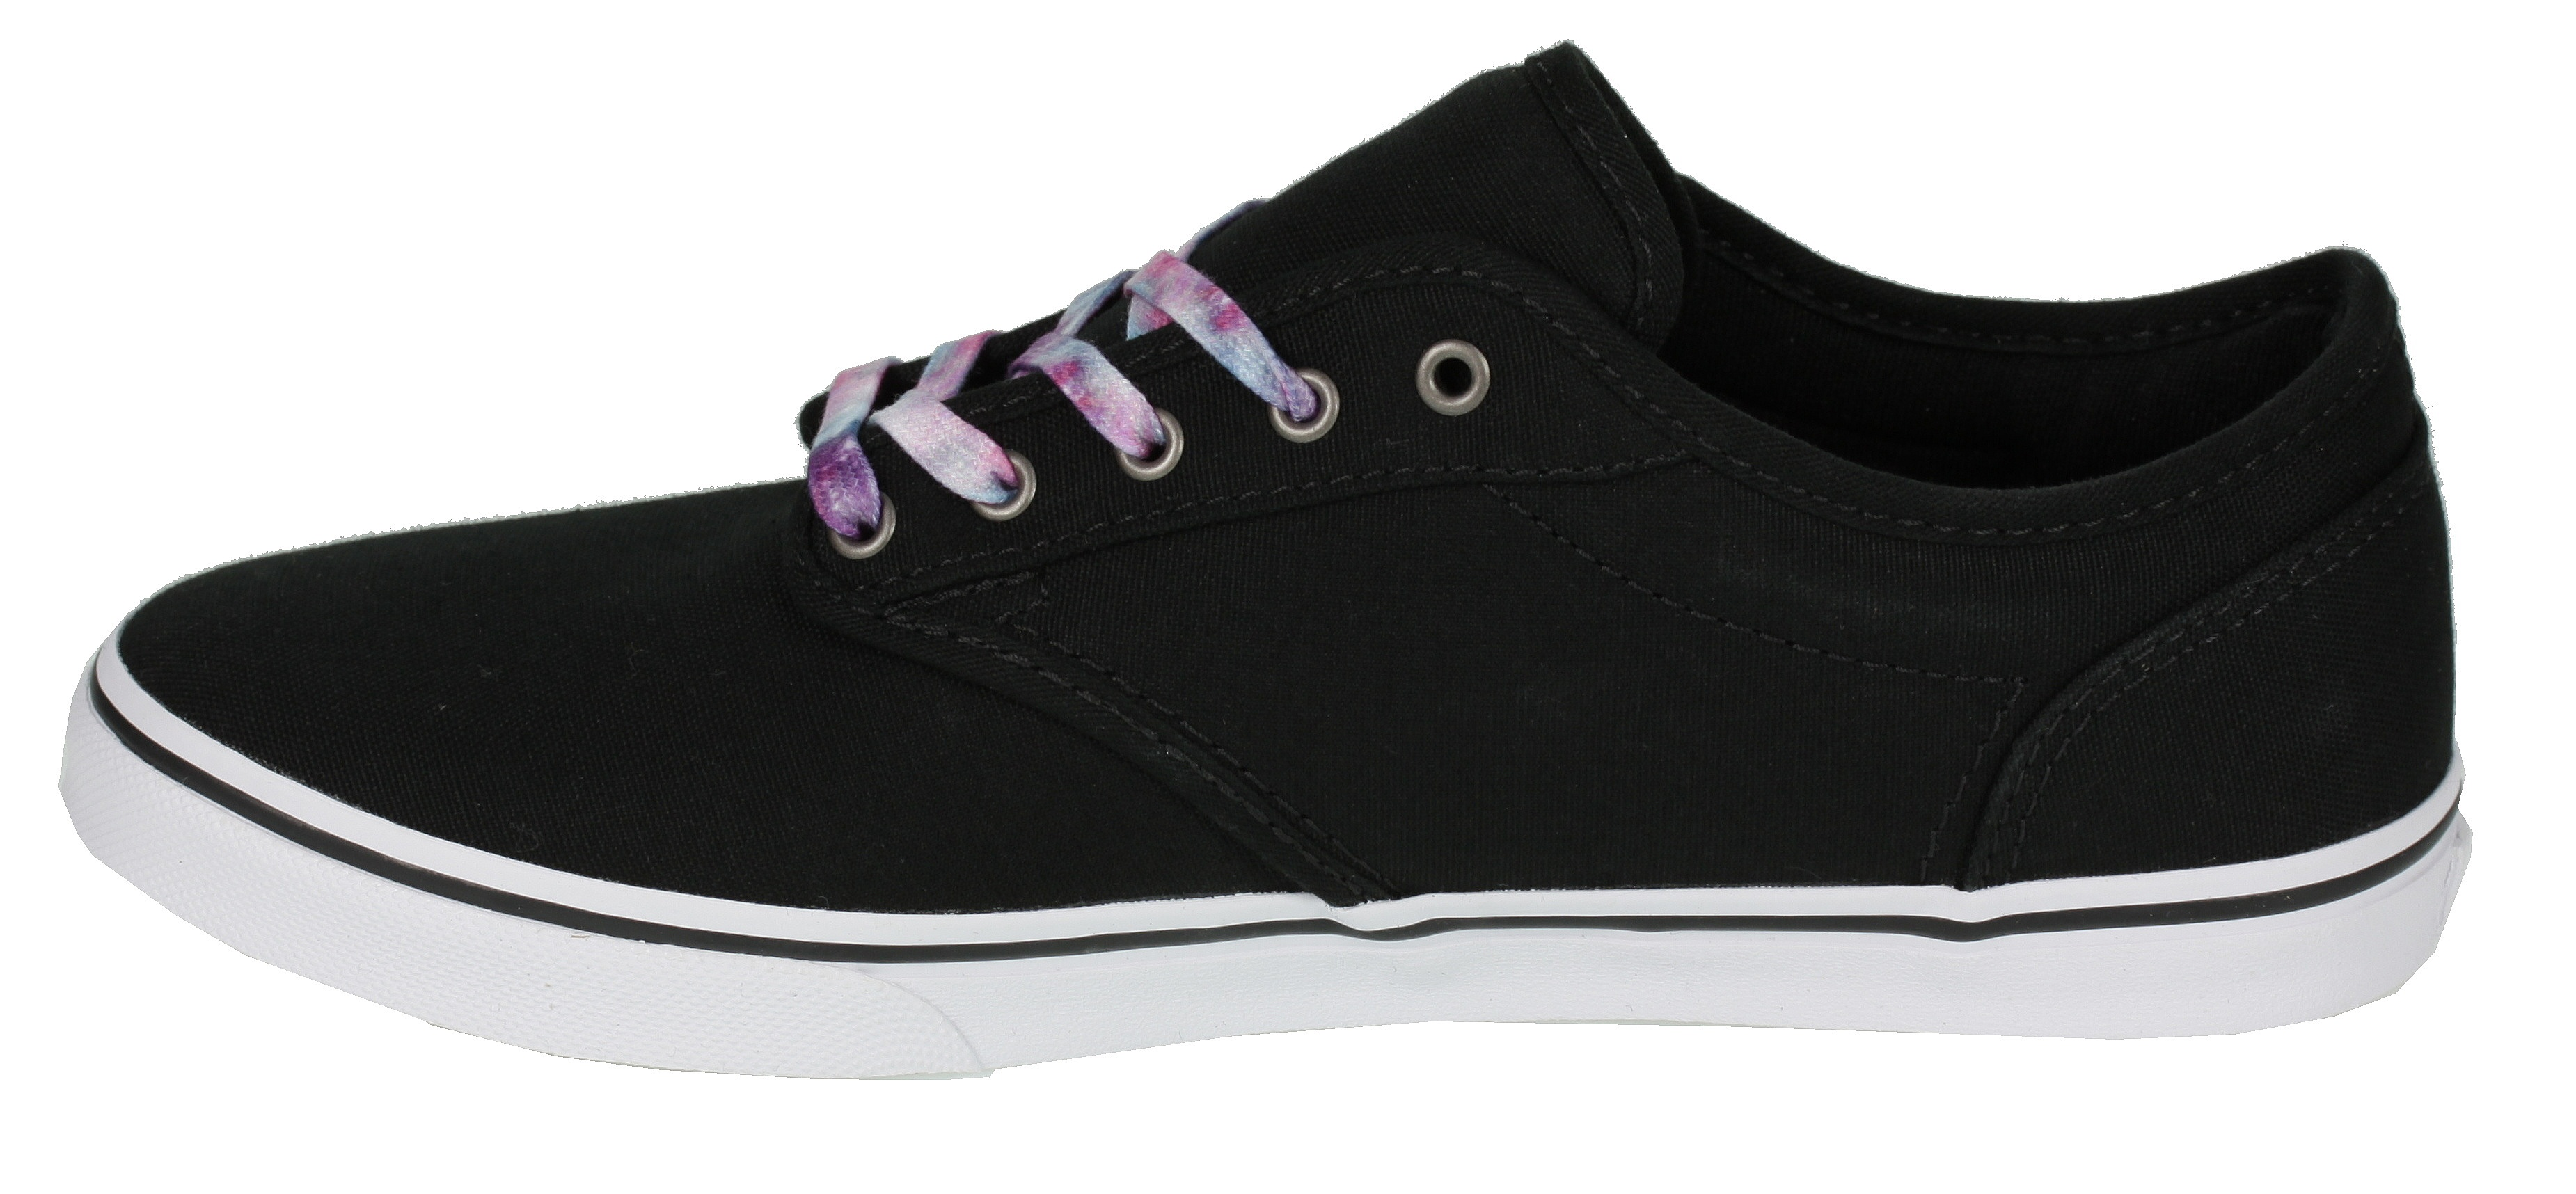 63e8d2685 topánky Vans Atwood Low - Cosmic Galaxy Lace/Black - Snowboard shop ...